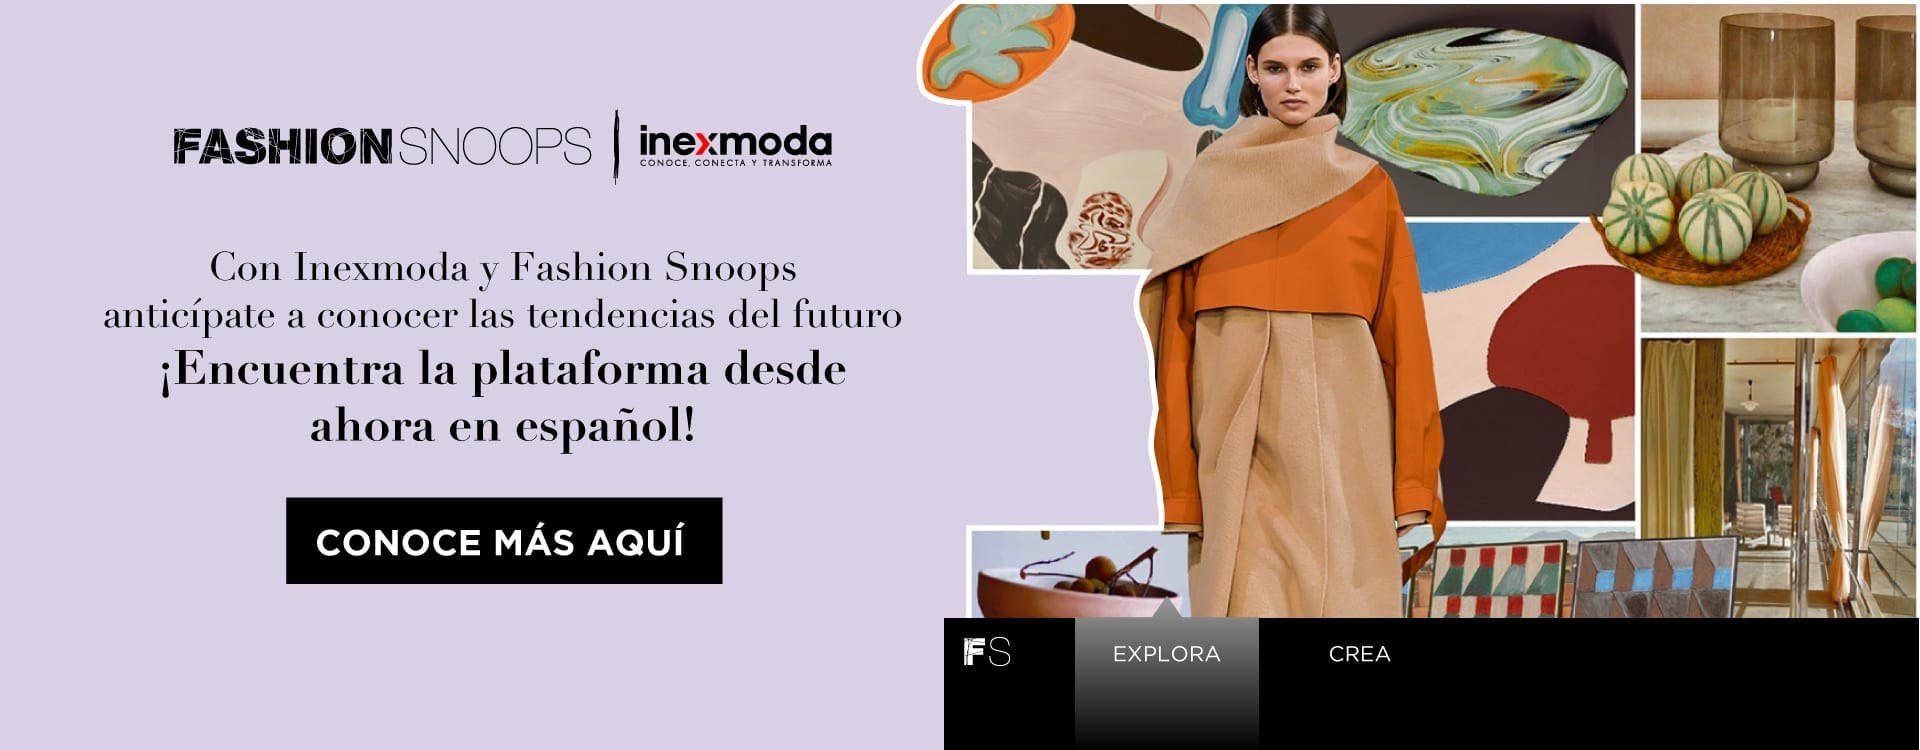 Fashion Snoops inexmoda